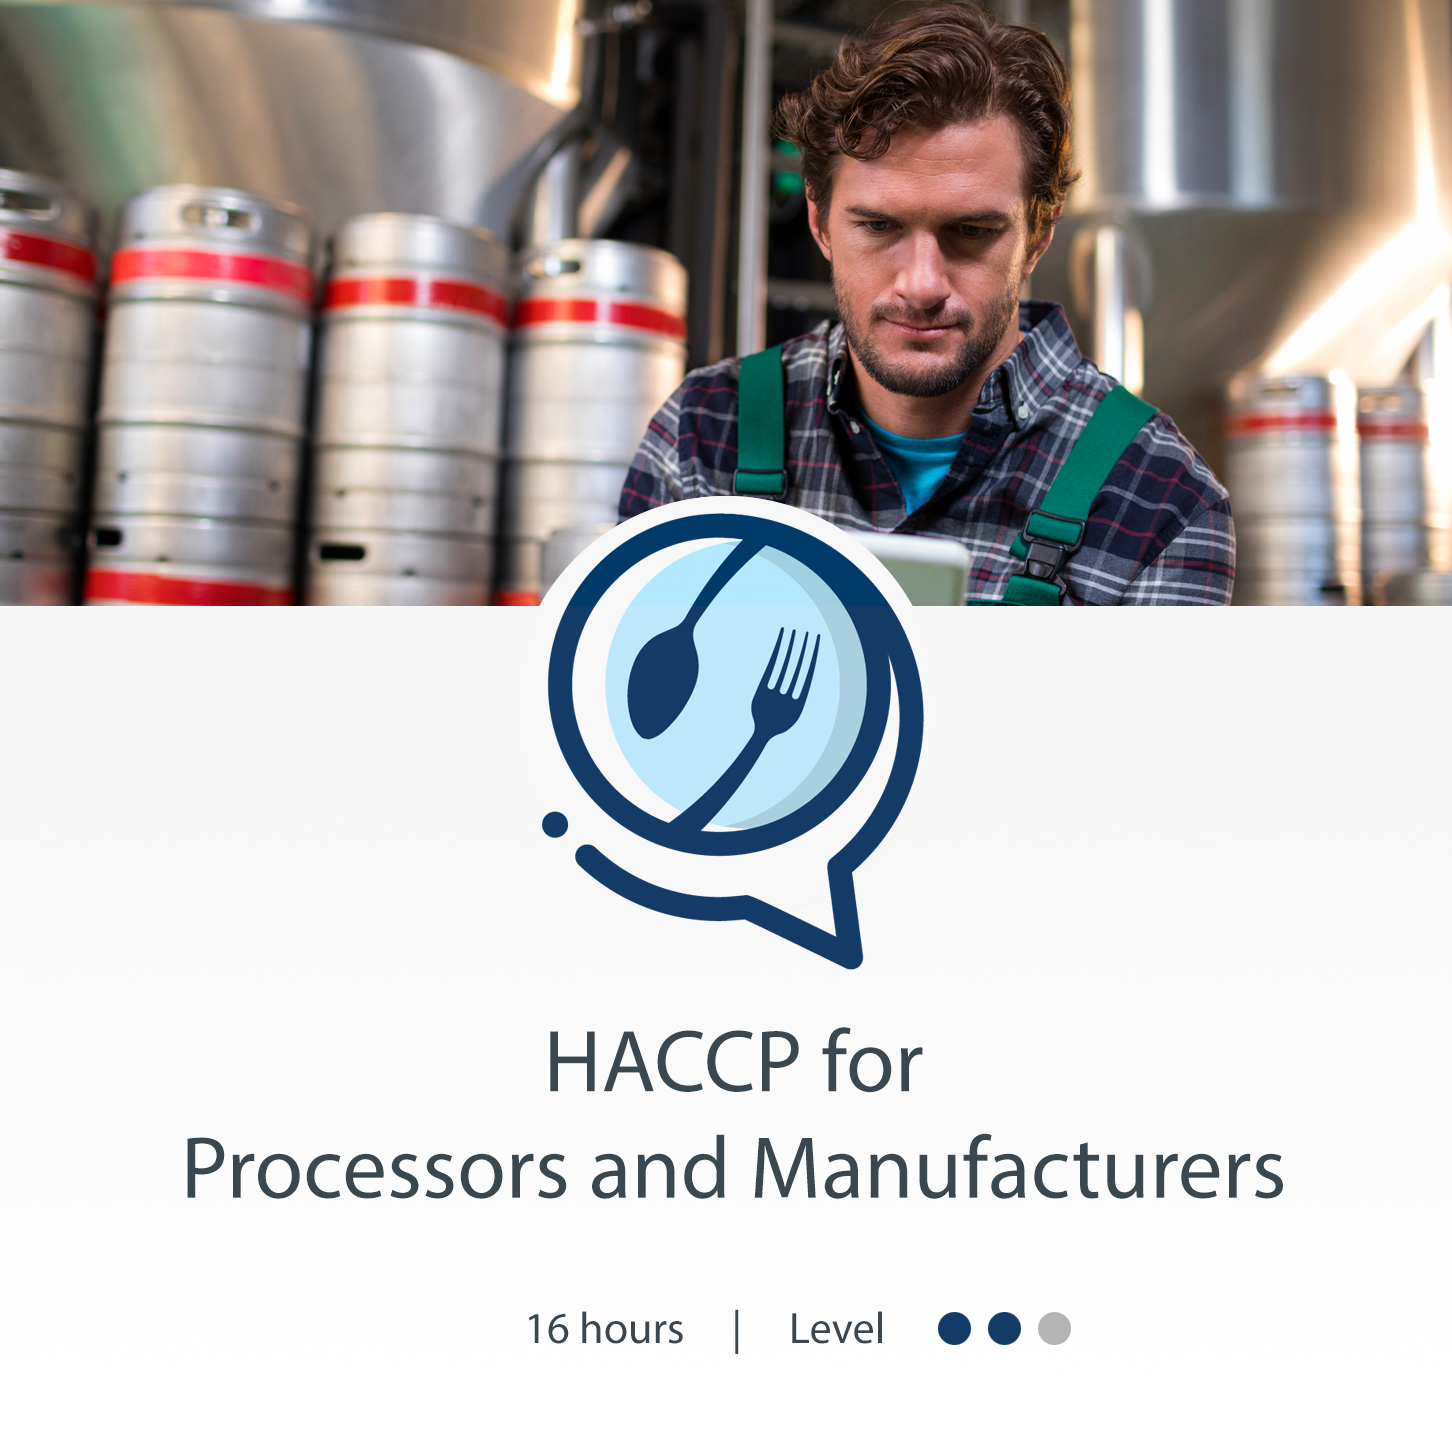 HACCPTraining.org - Courses - HACCP for Processors and Manufacturers